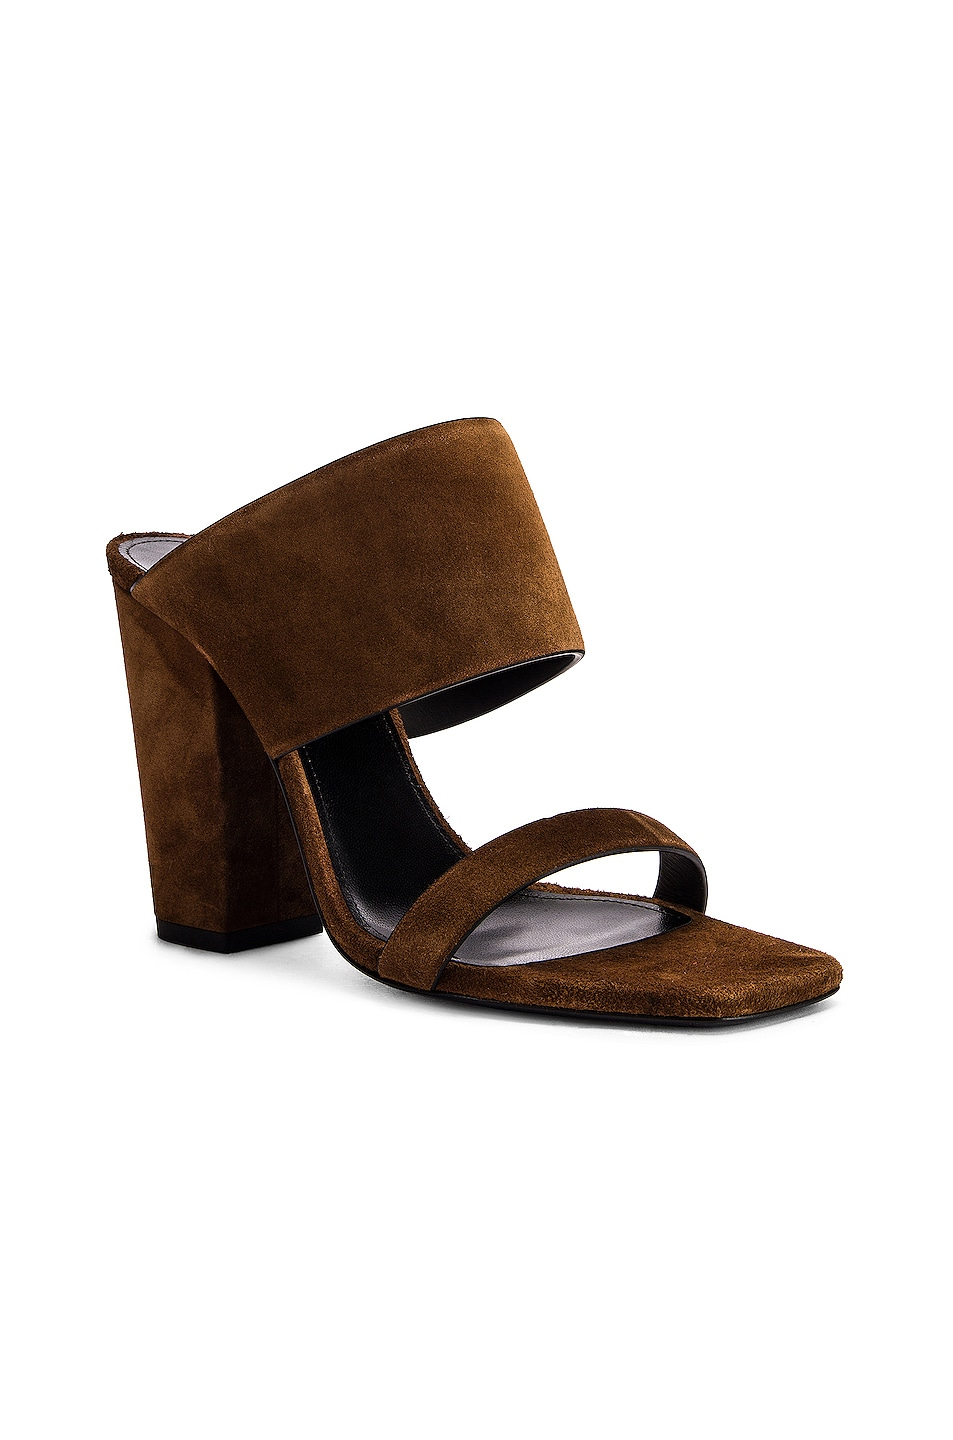 Image 2 of Saint Laurent Suede Oak Mules in Caramel